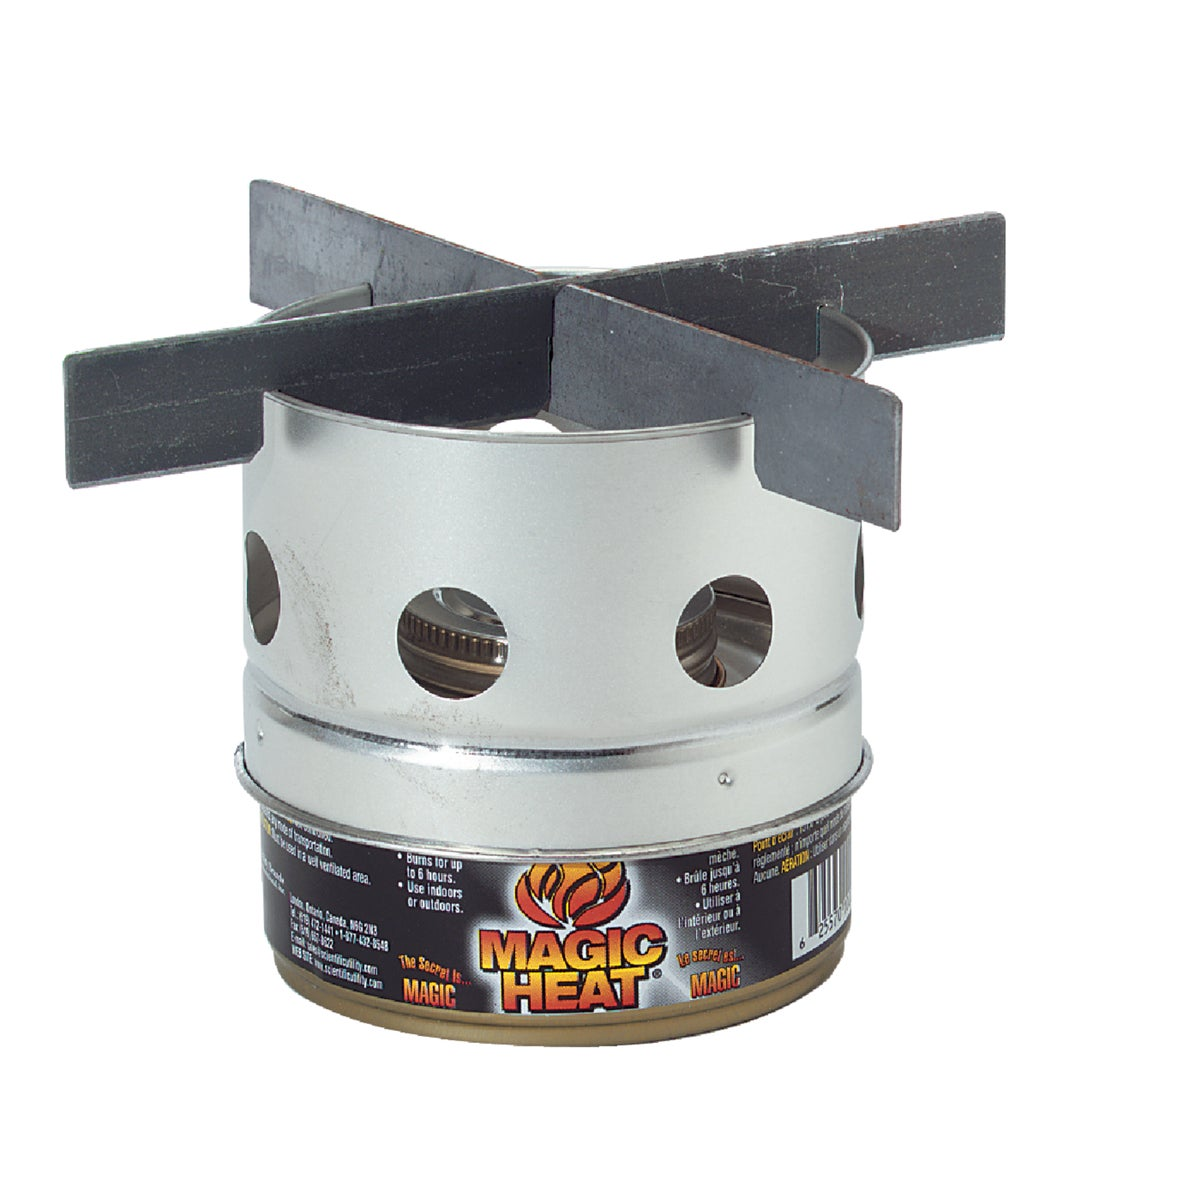 STOVE KIT & FUEL - MH002 by Scientific Utility